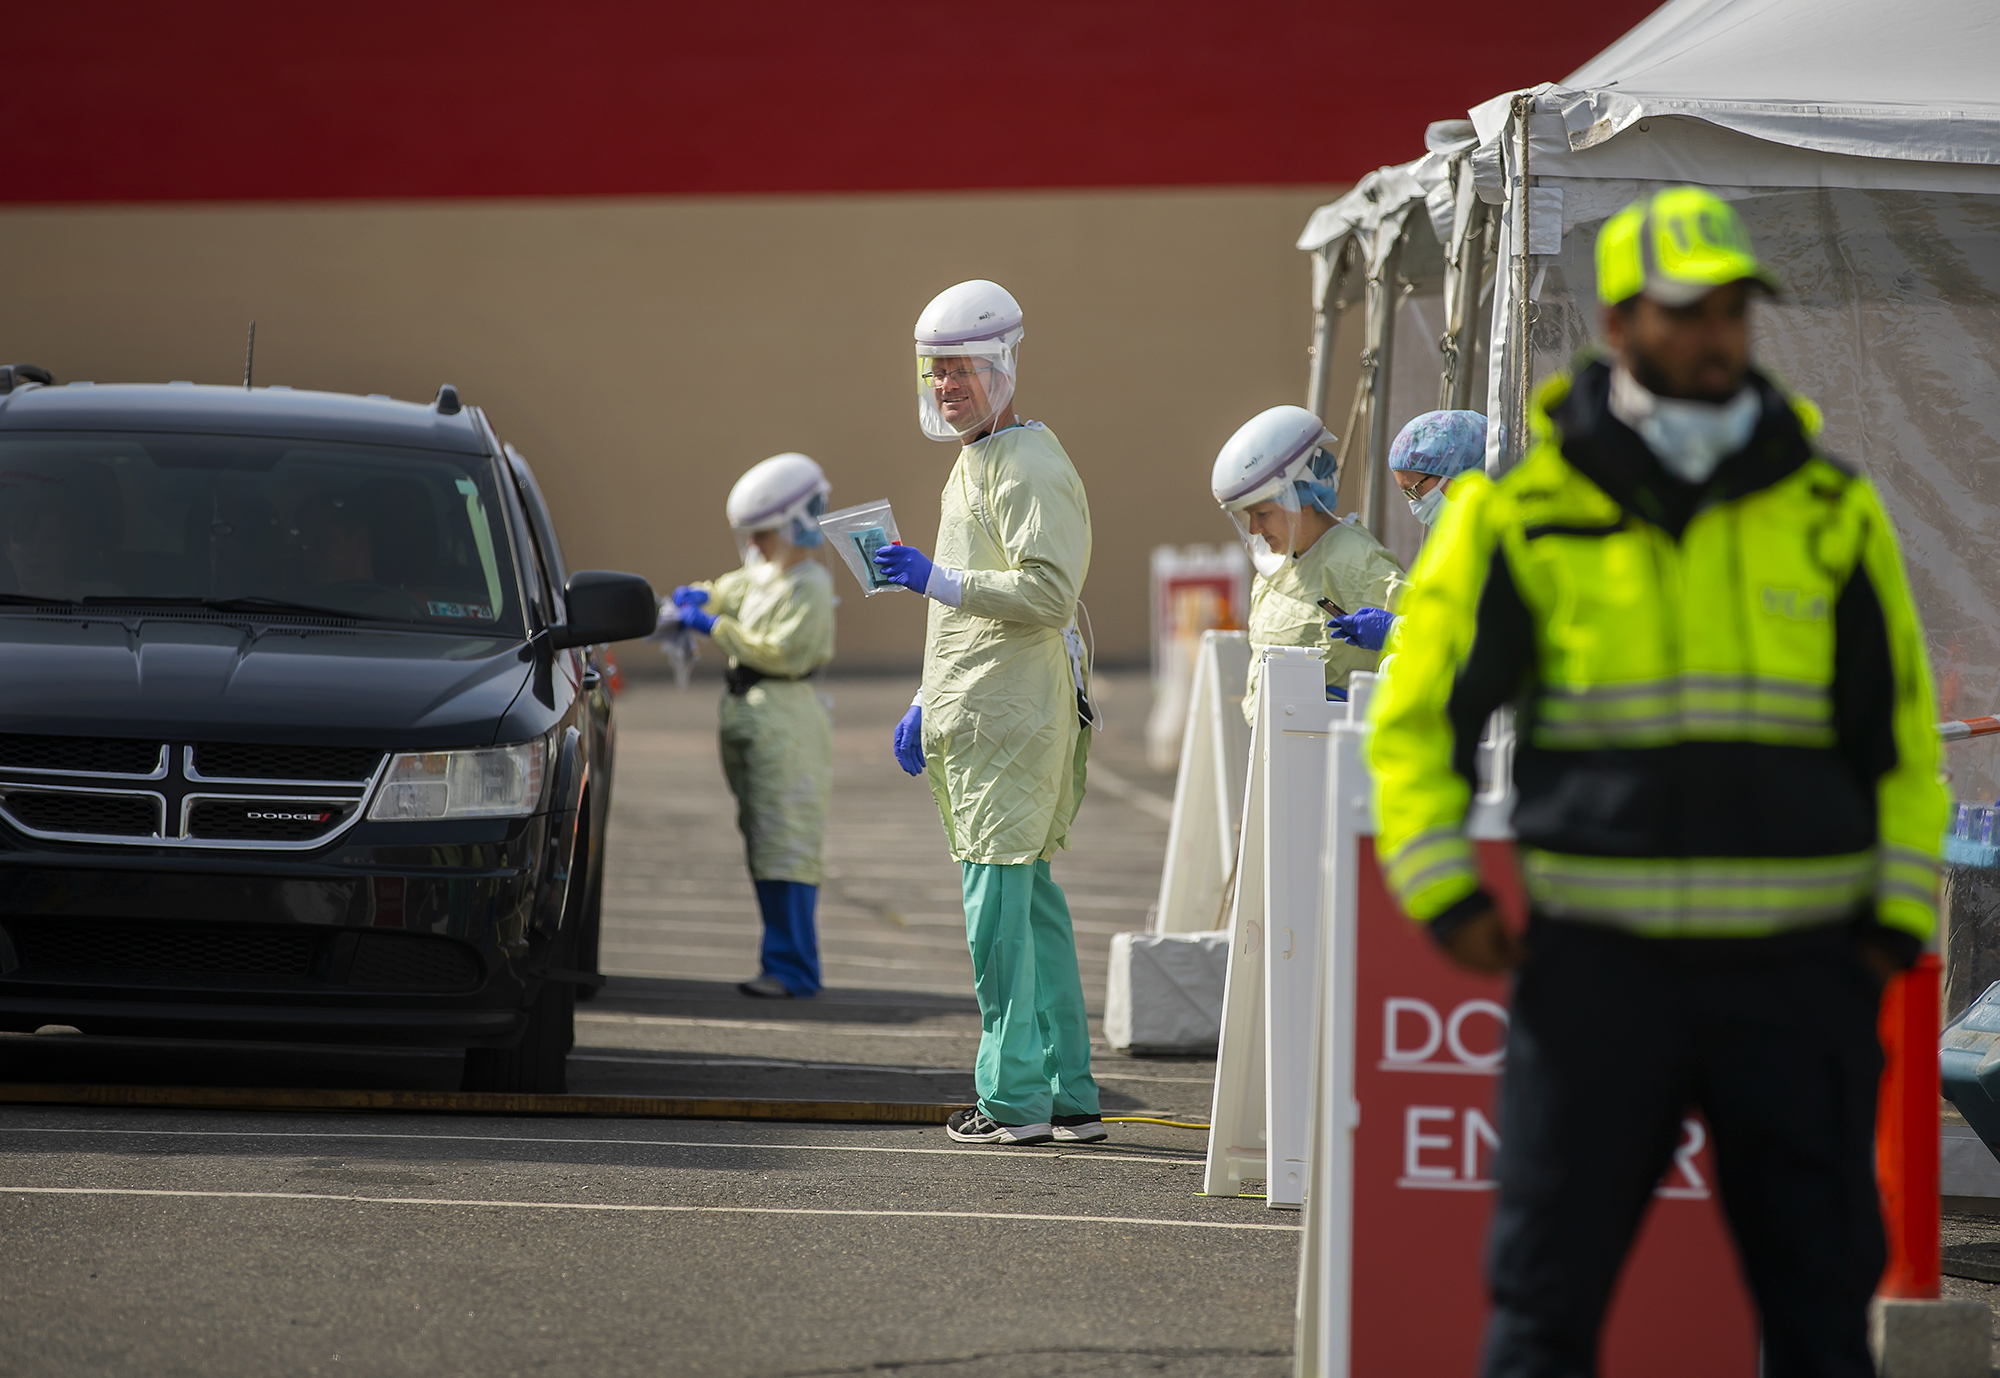 A car in line at drive through testing at the COVID-19 pop up testing site, with four medical personnel outside car in full protective gear and a security guard wearing a medical mask standing at the entrance